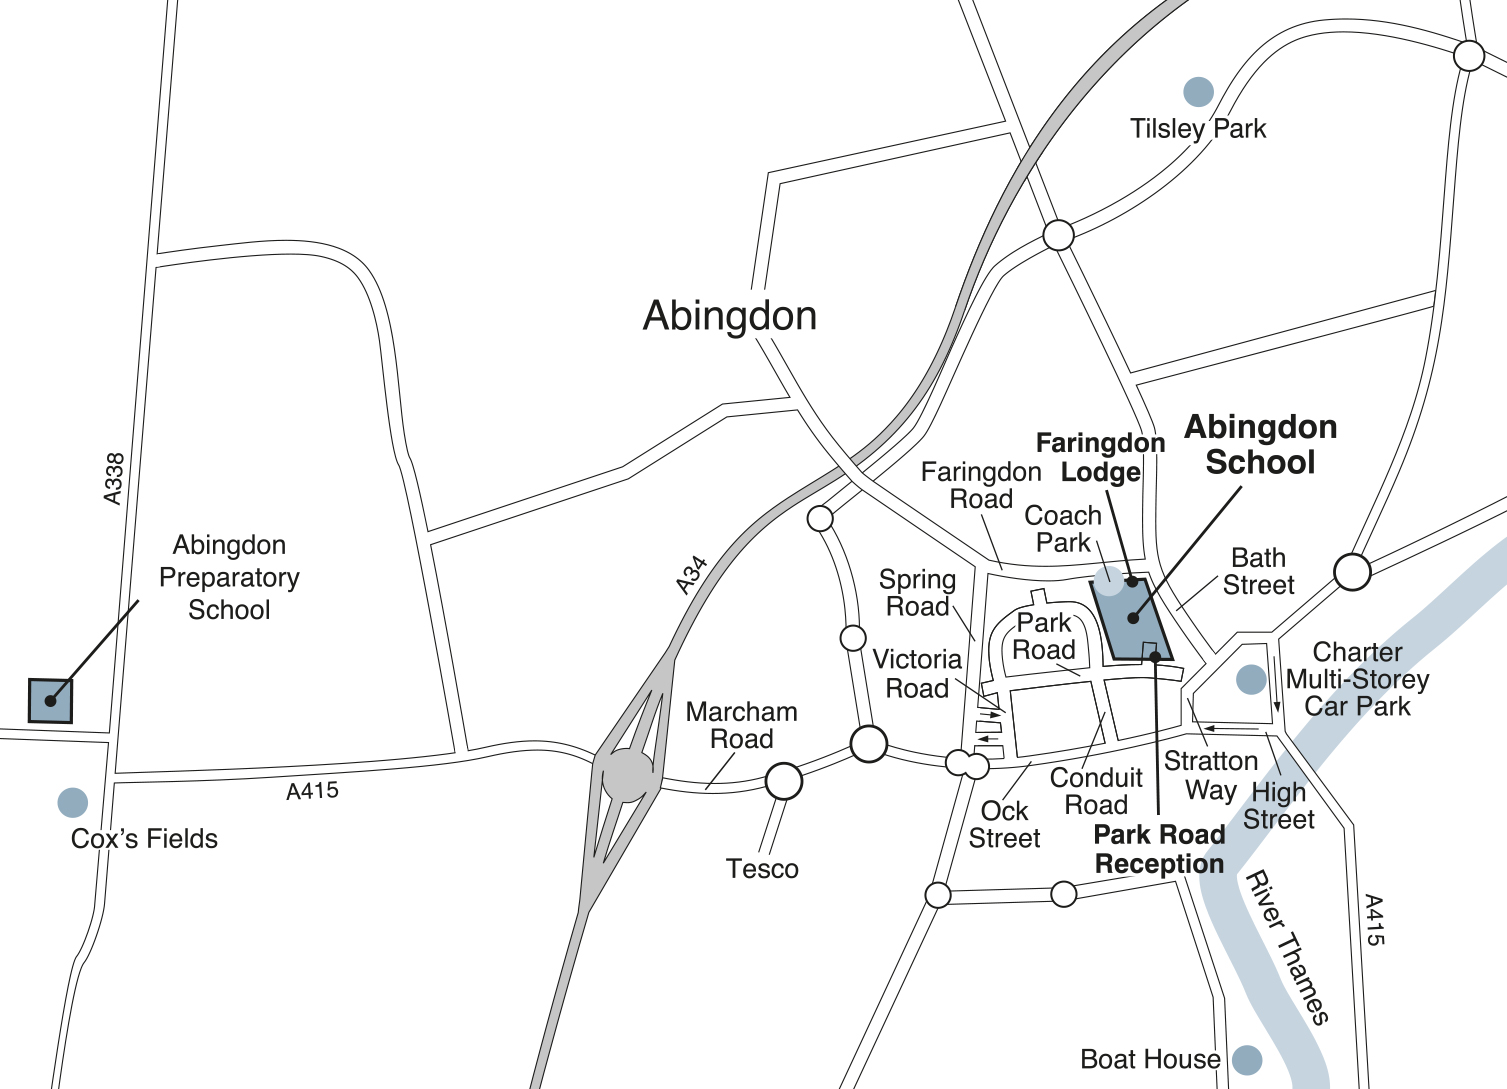 Area Map of Abingdon